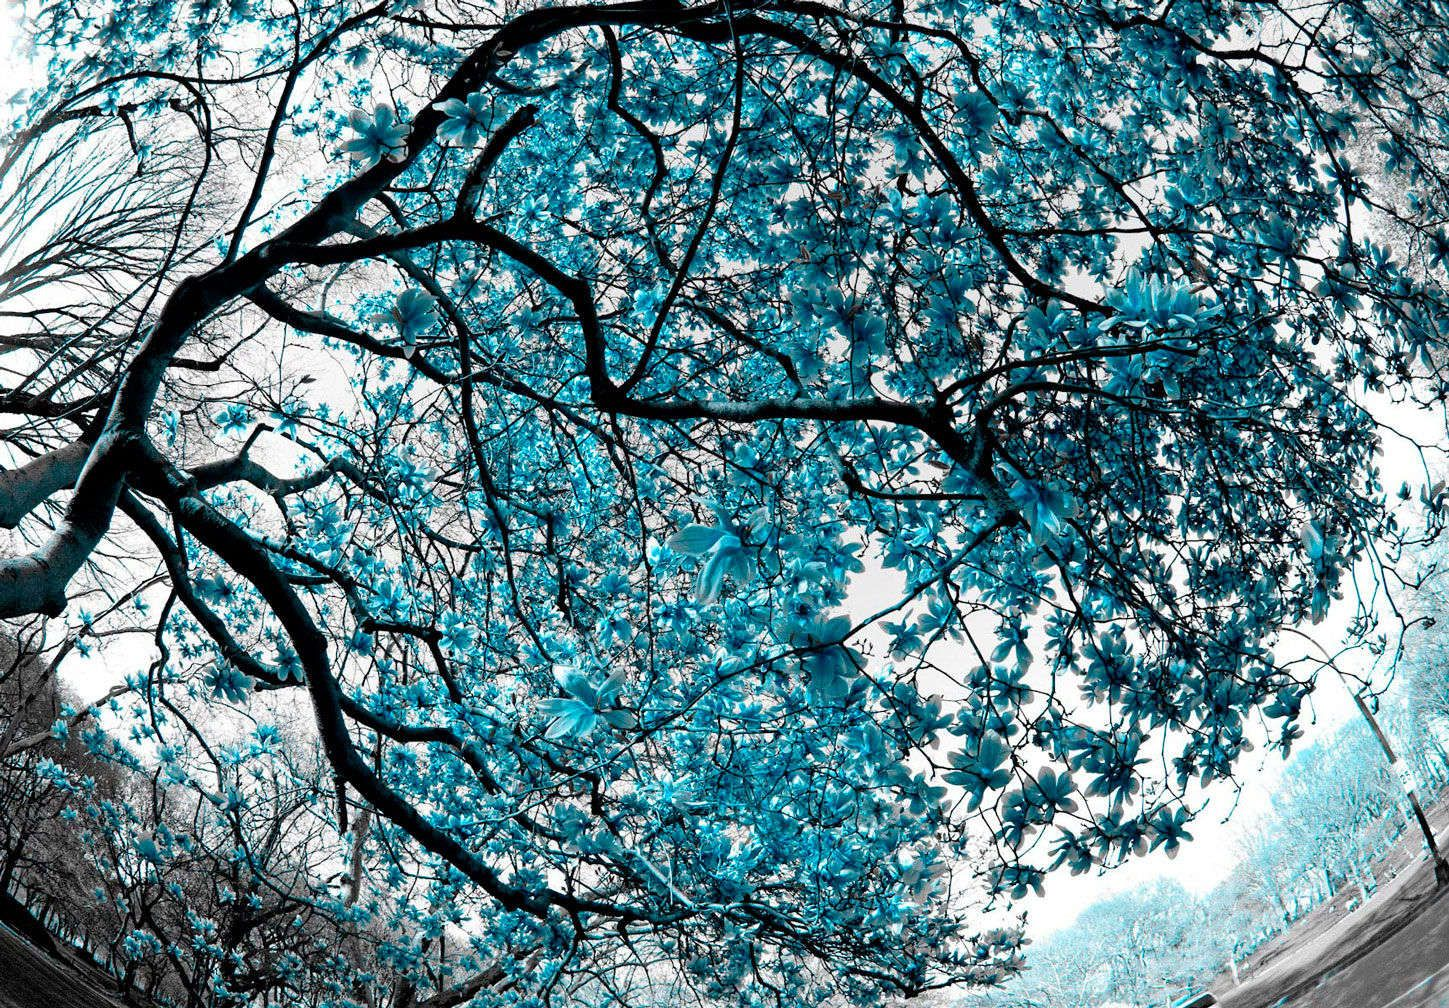 Magnolia Tree in Blue